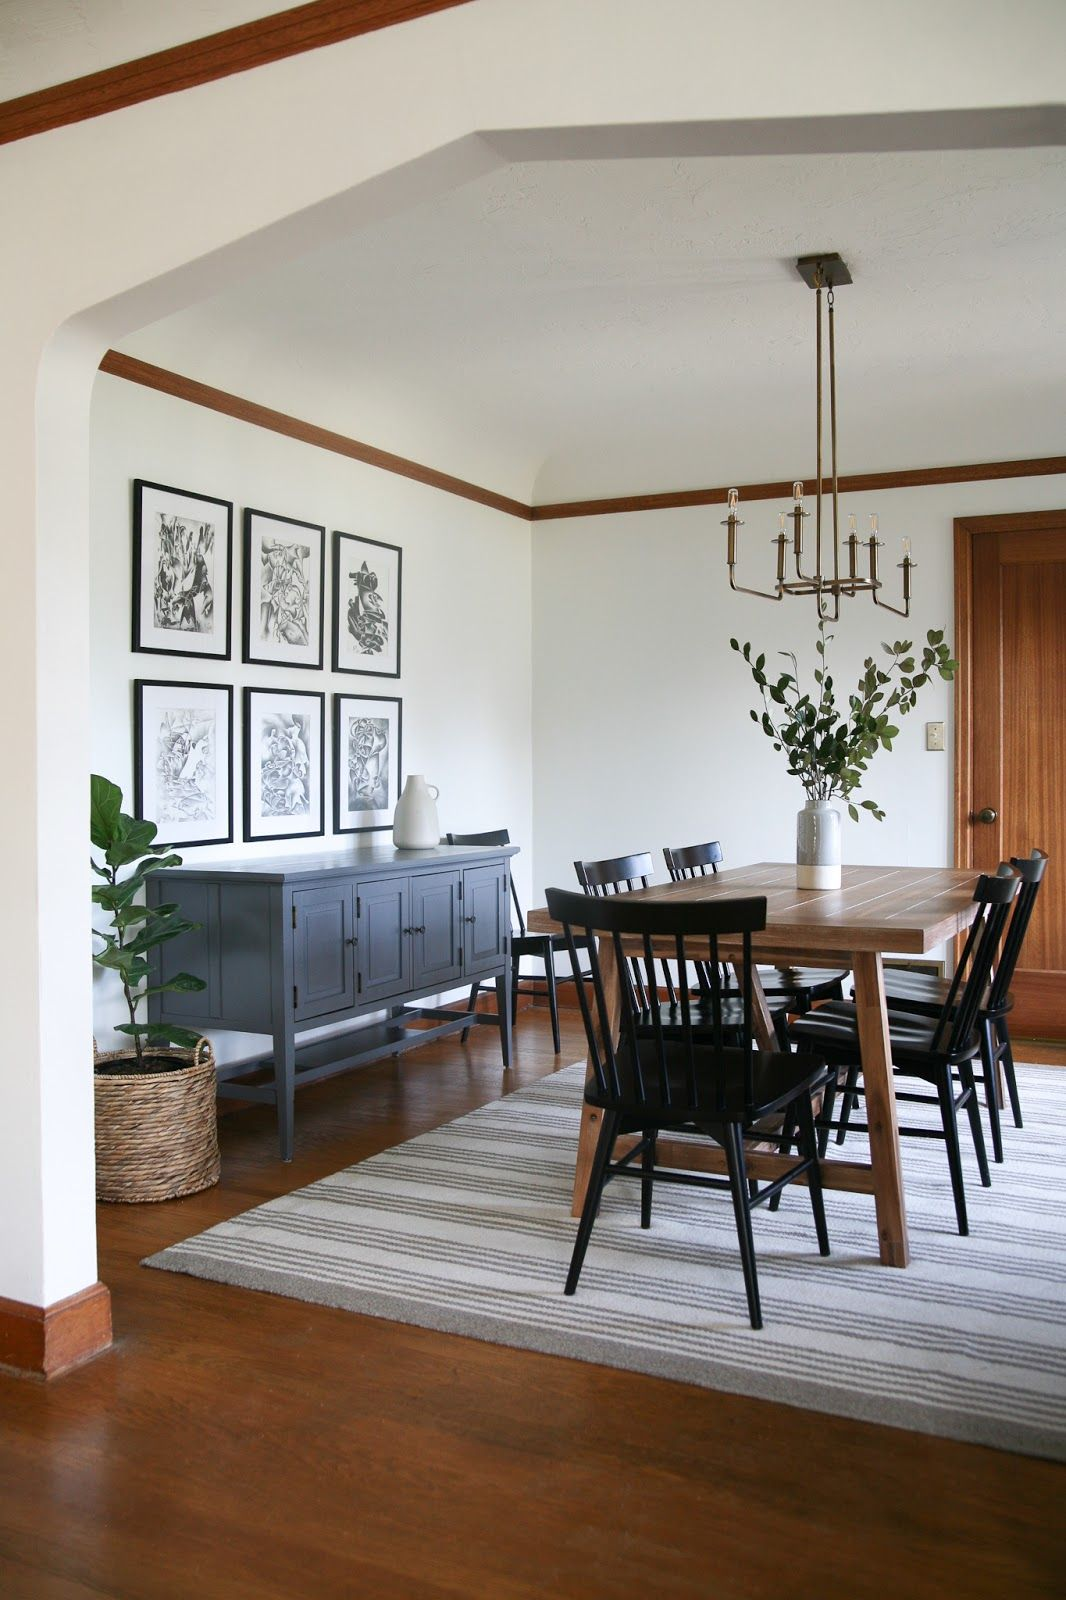 Suzannah's Modern Traditional Dining Room Reveal - Bigger Than the Three of Us